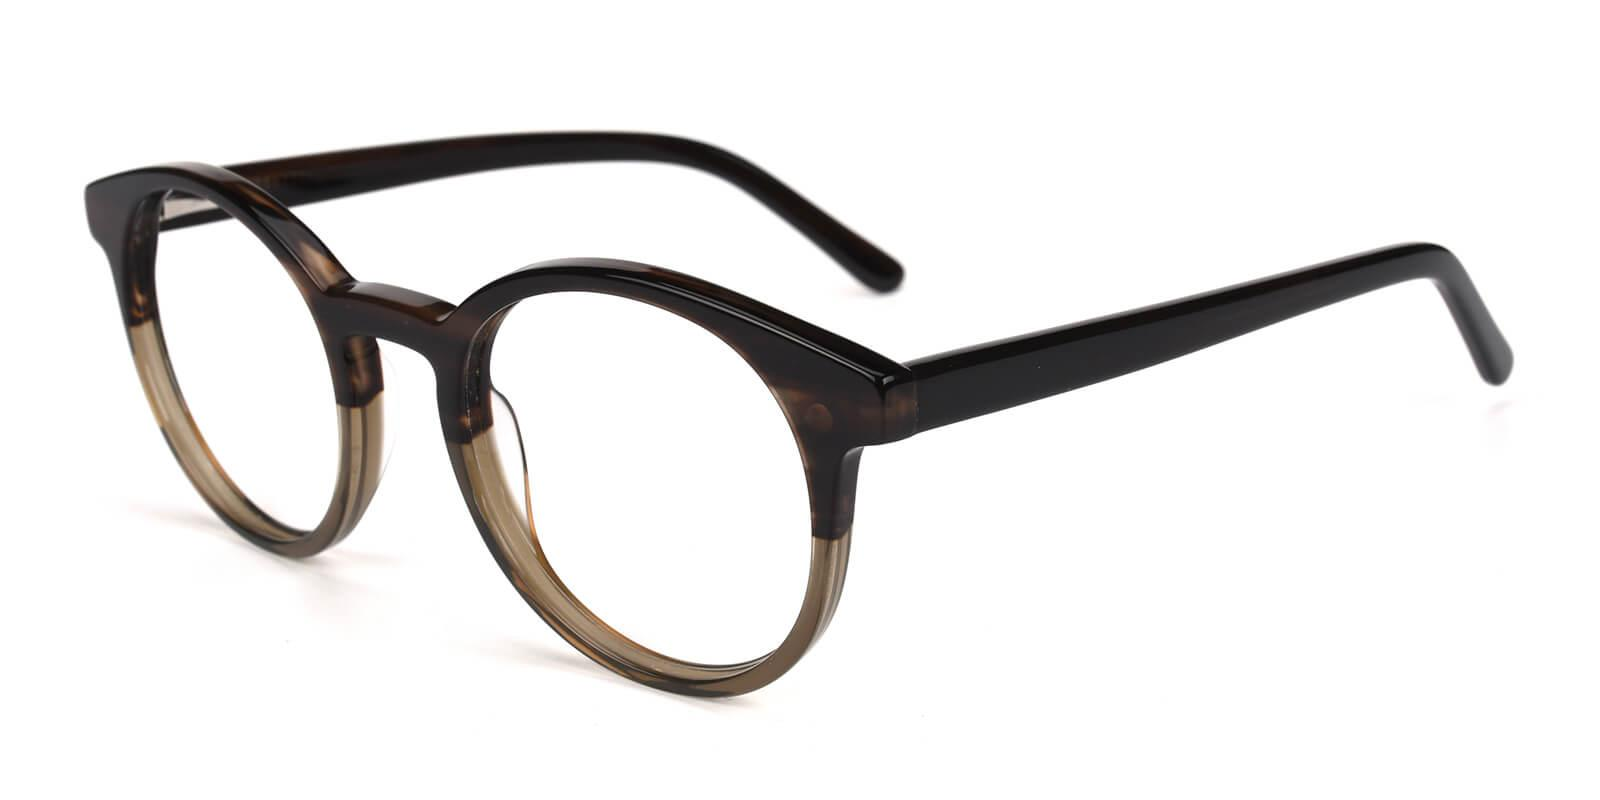 Satin-Brown-Round-Acetate-Eyeglasses-detail